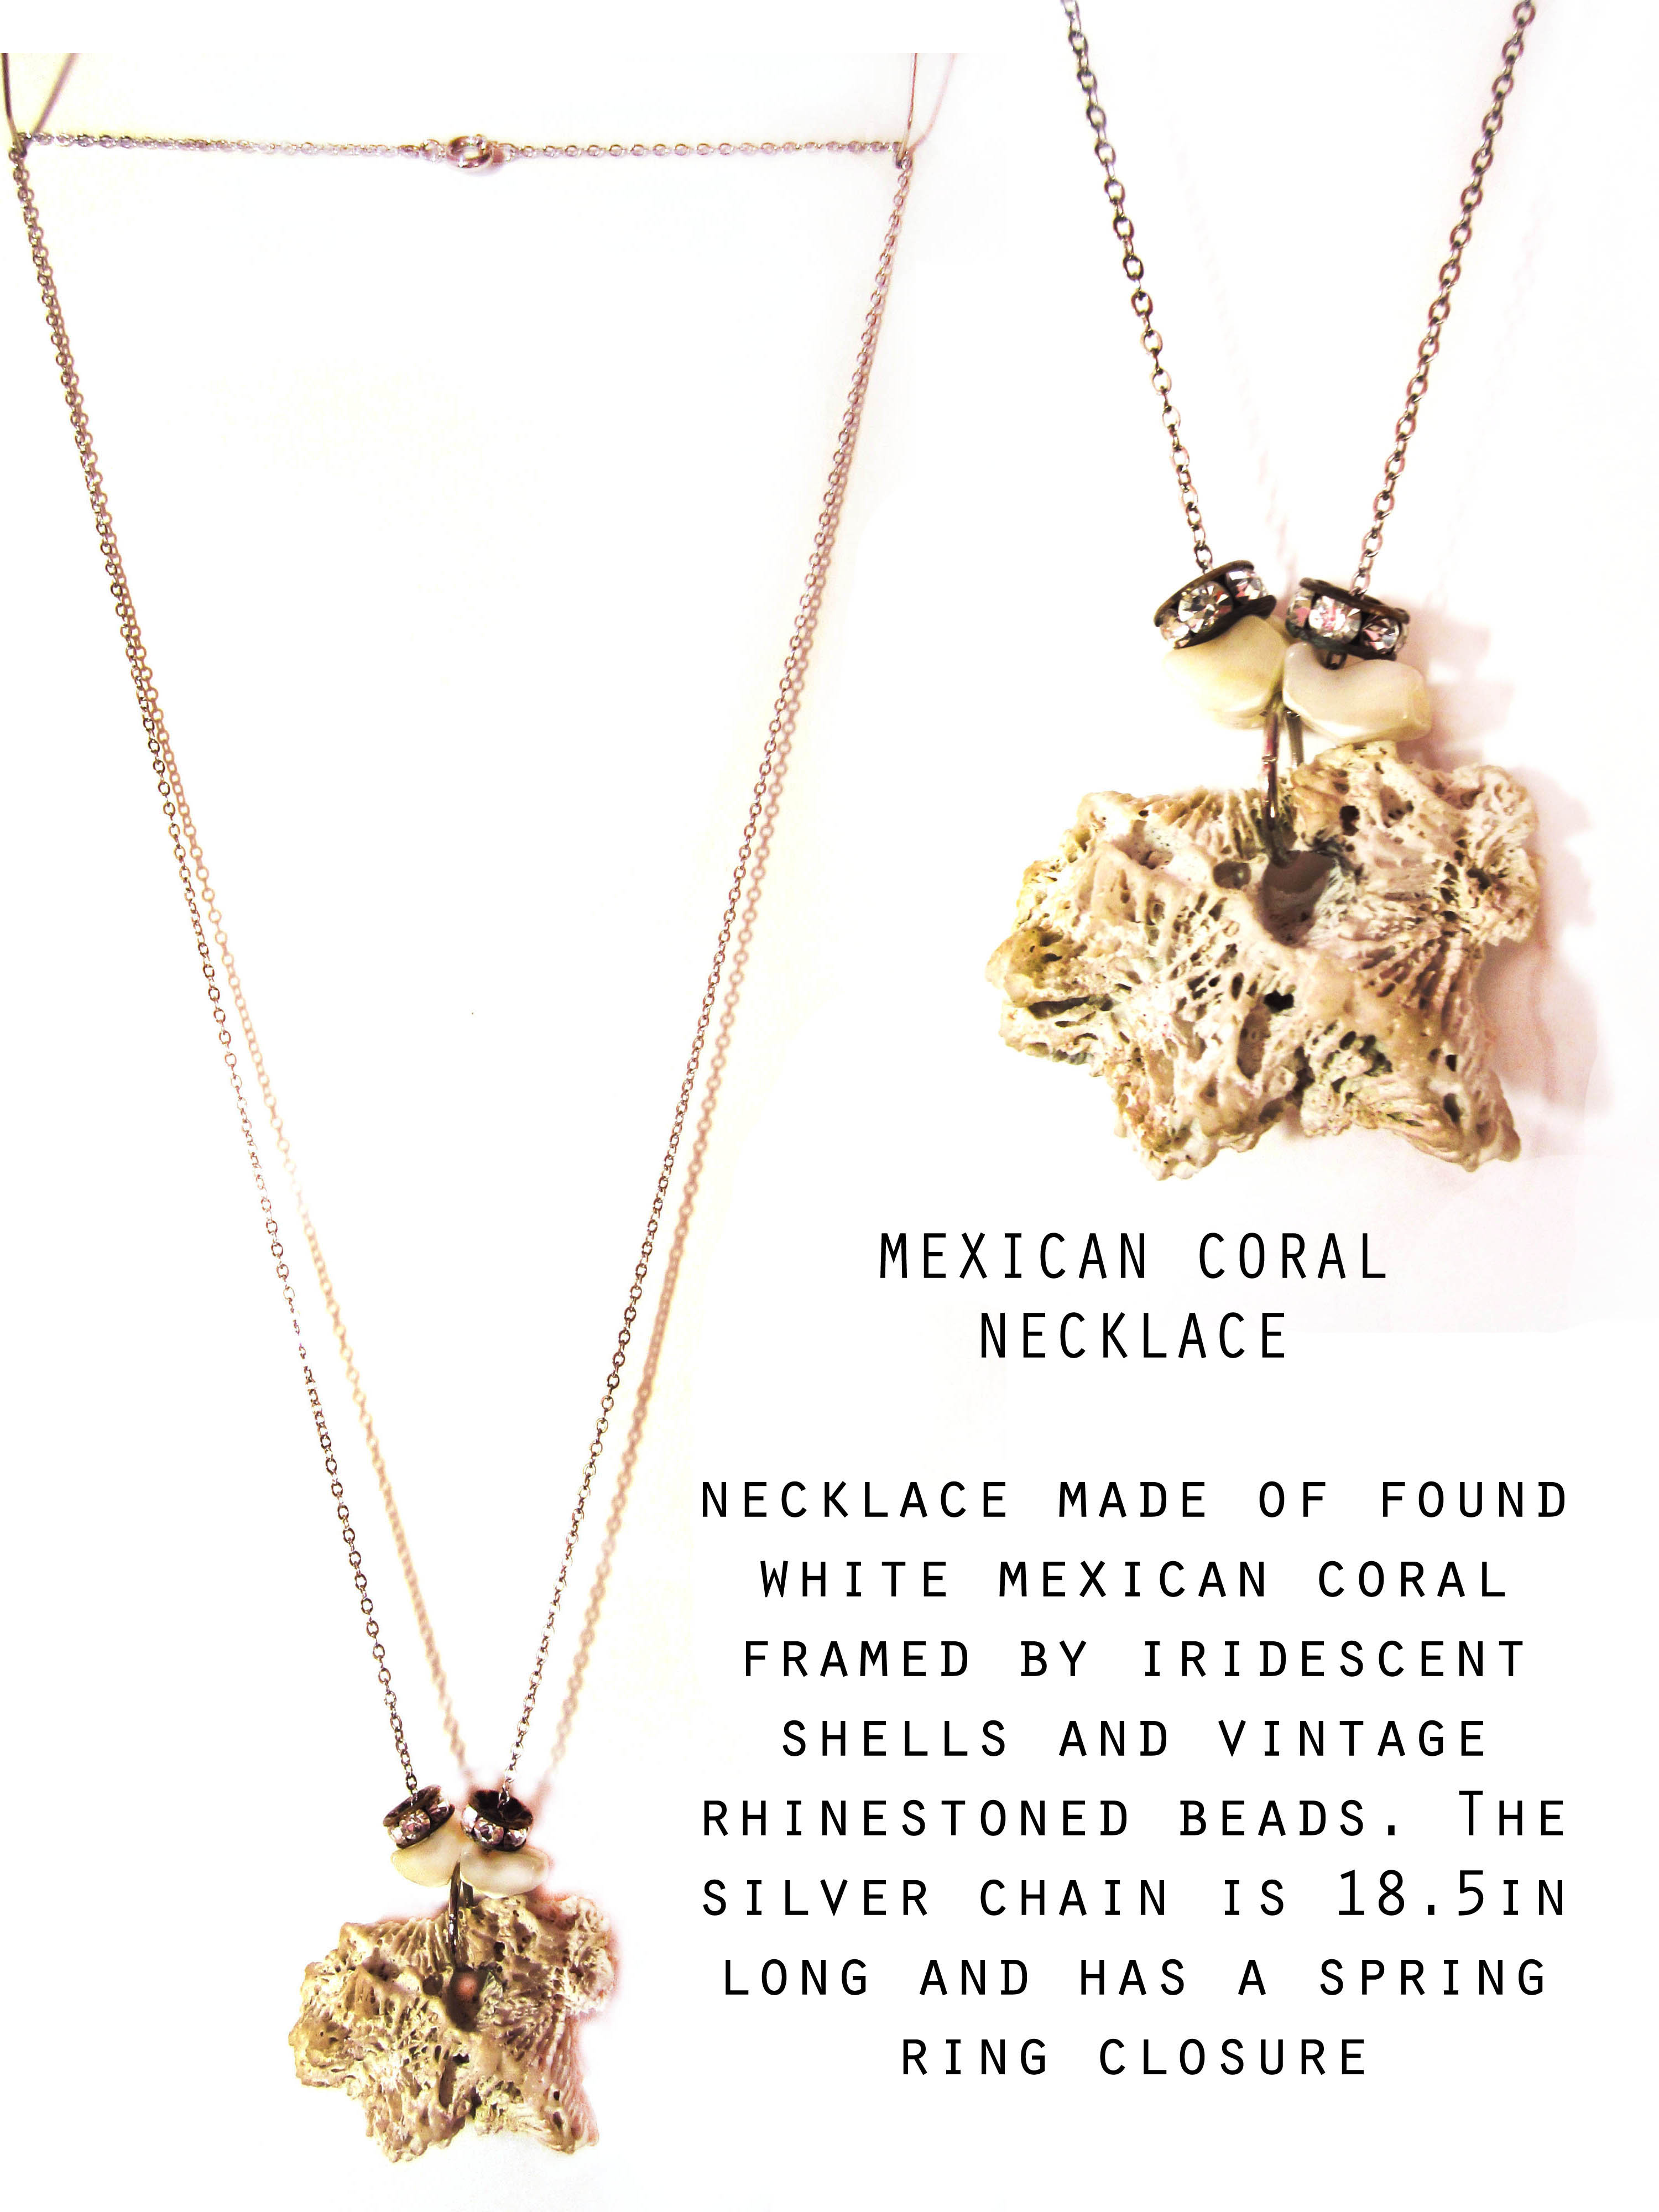 Mexican Coral Necklace